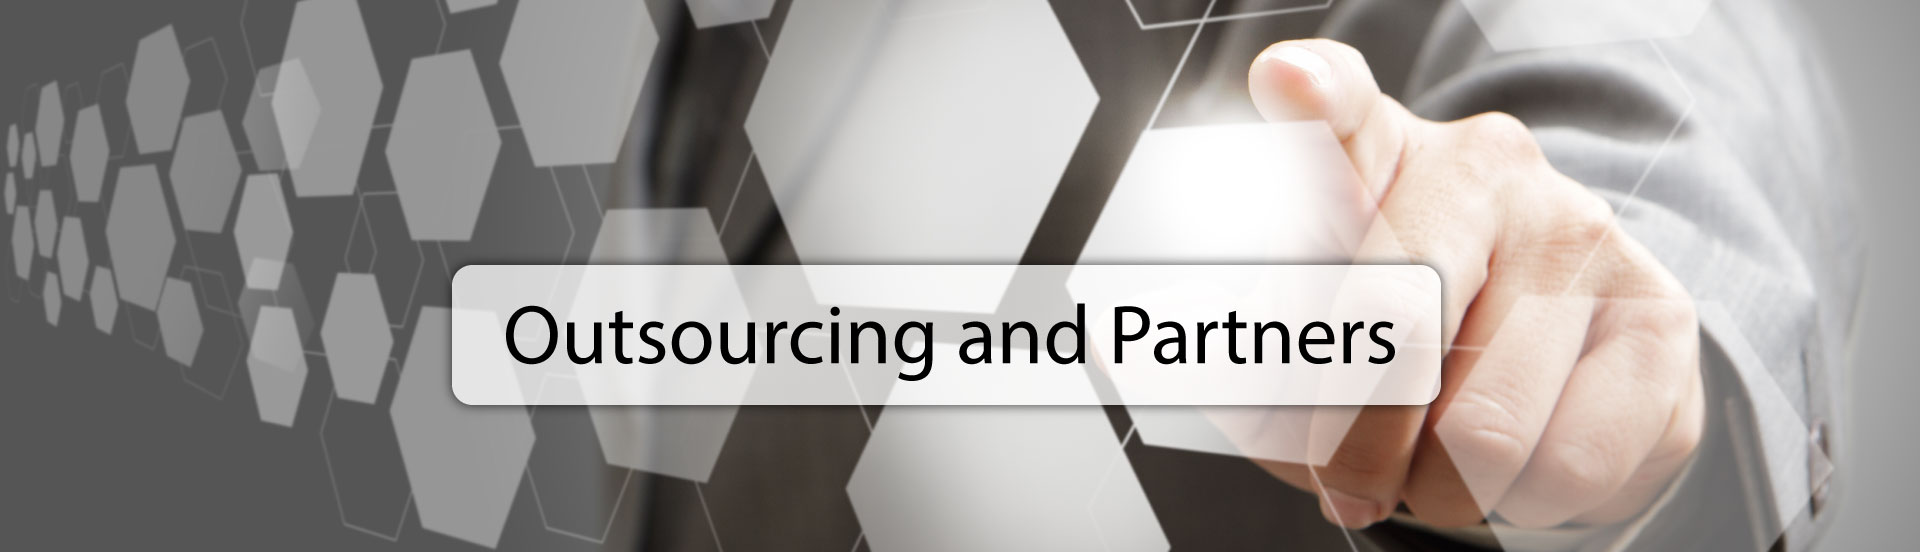 outsourcig and partners